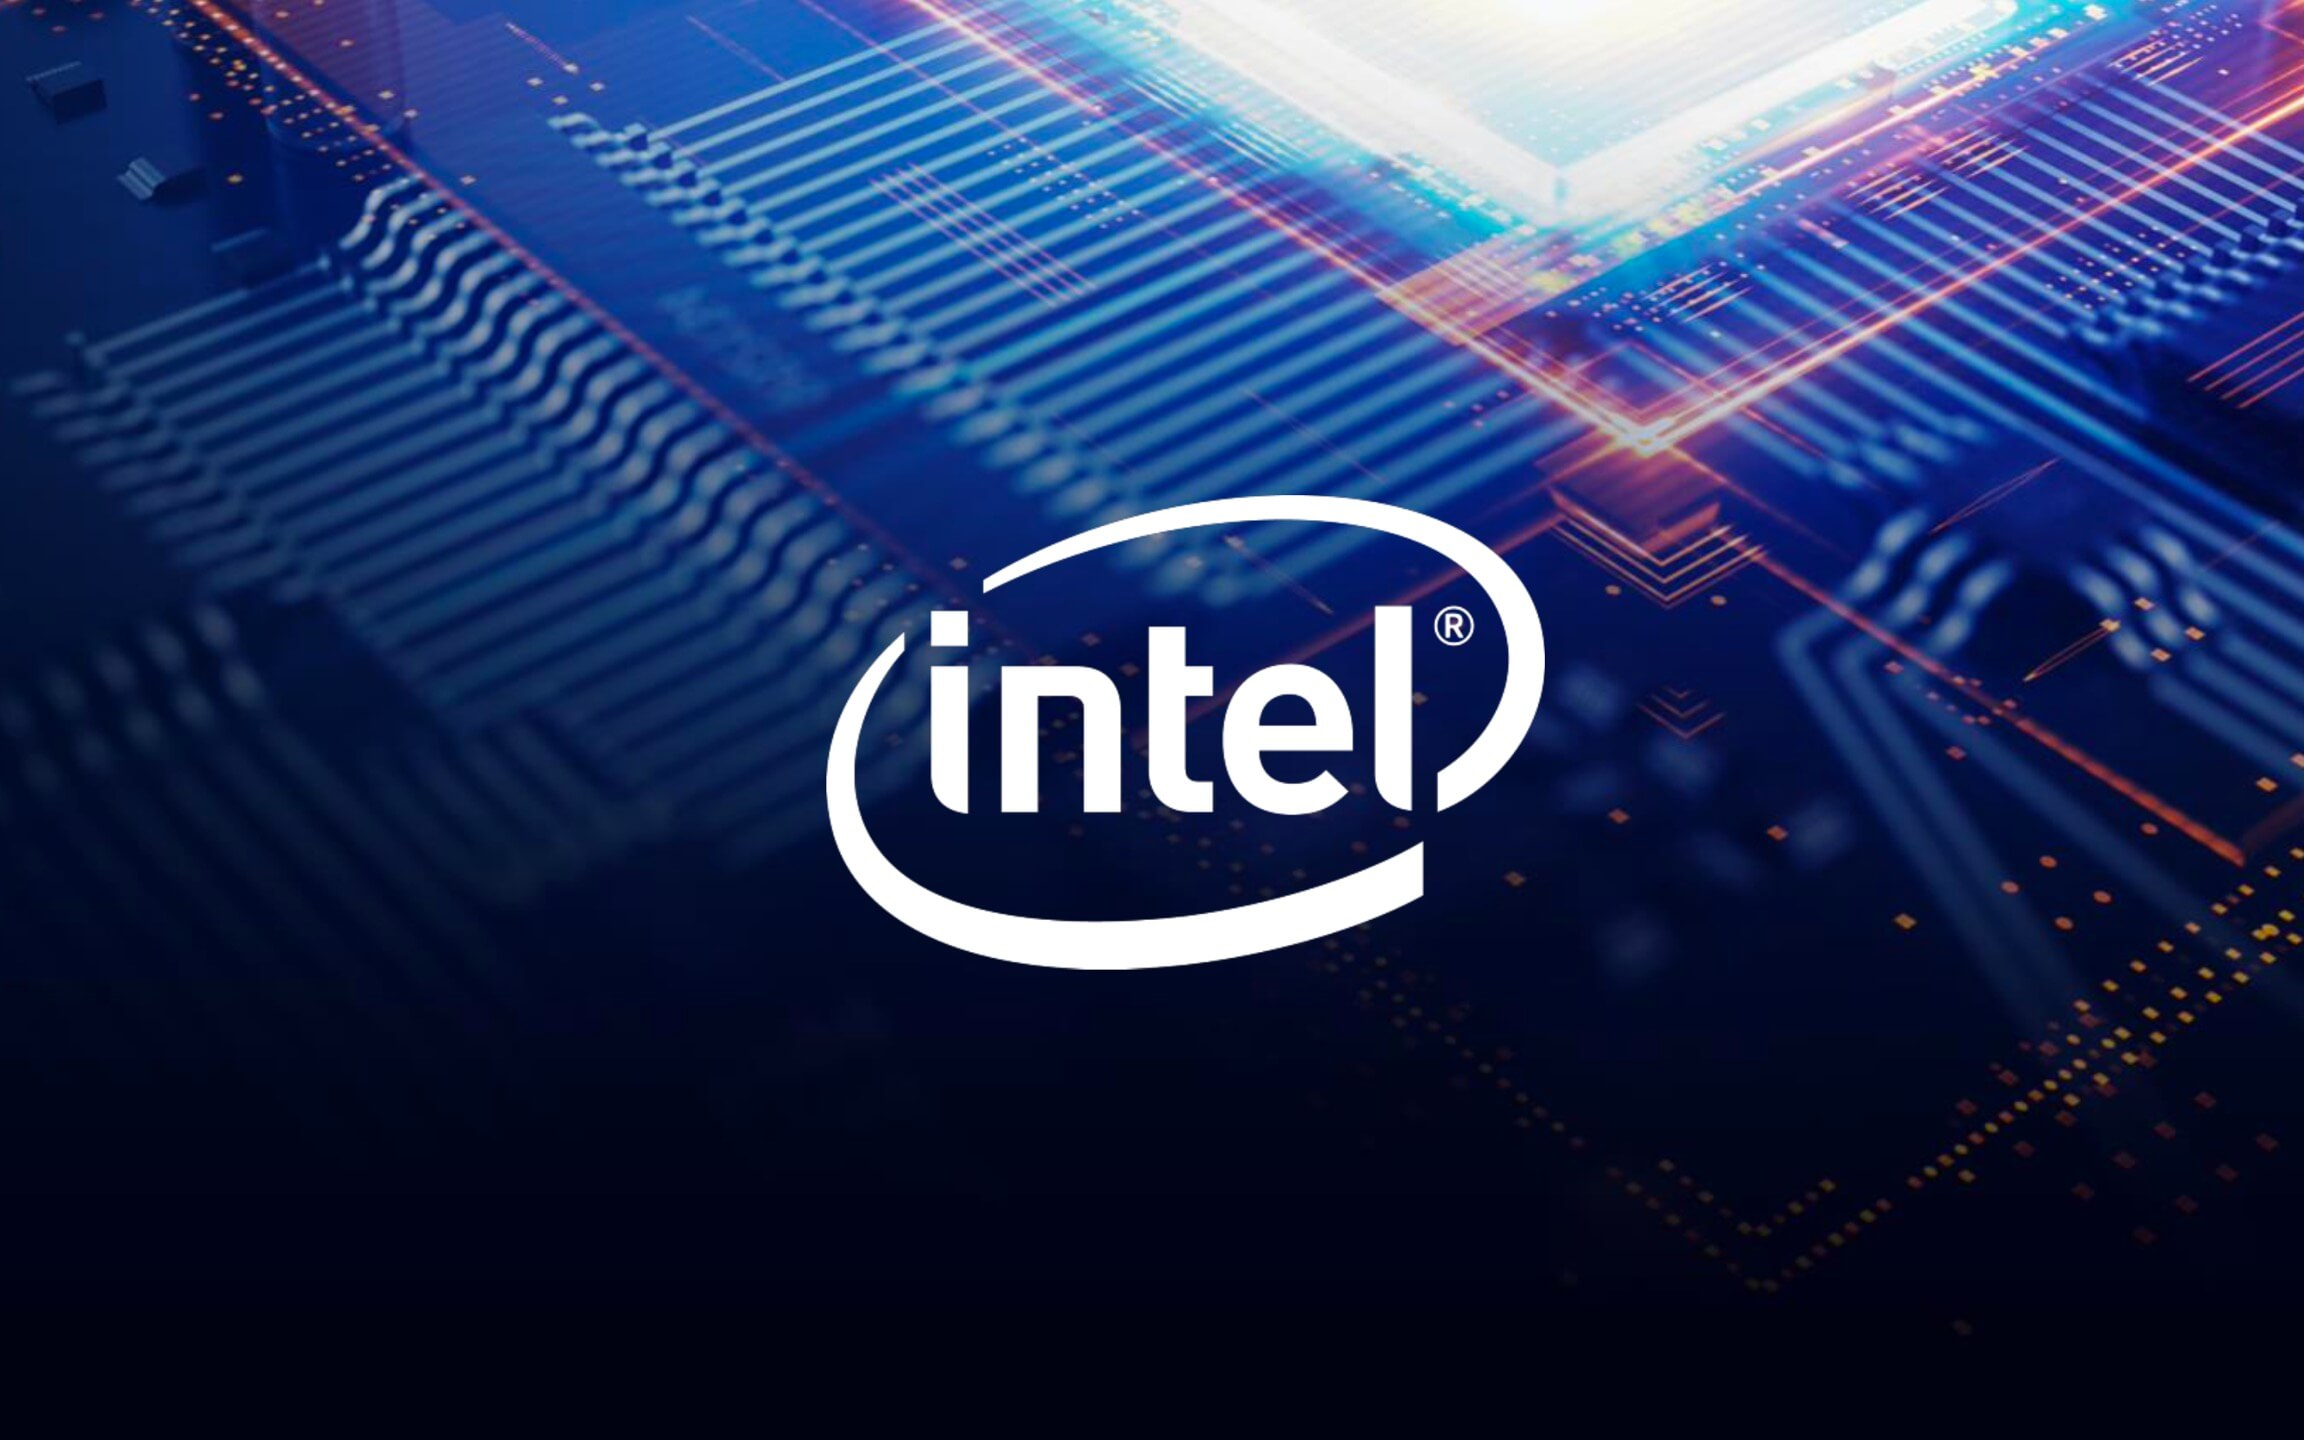 Intel launches 10th-gen Comet Lake H-series CPUs for high-end gaming laptops and productivity